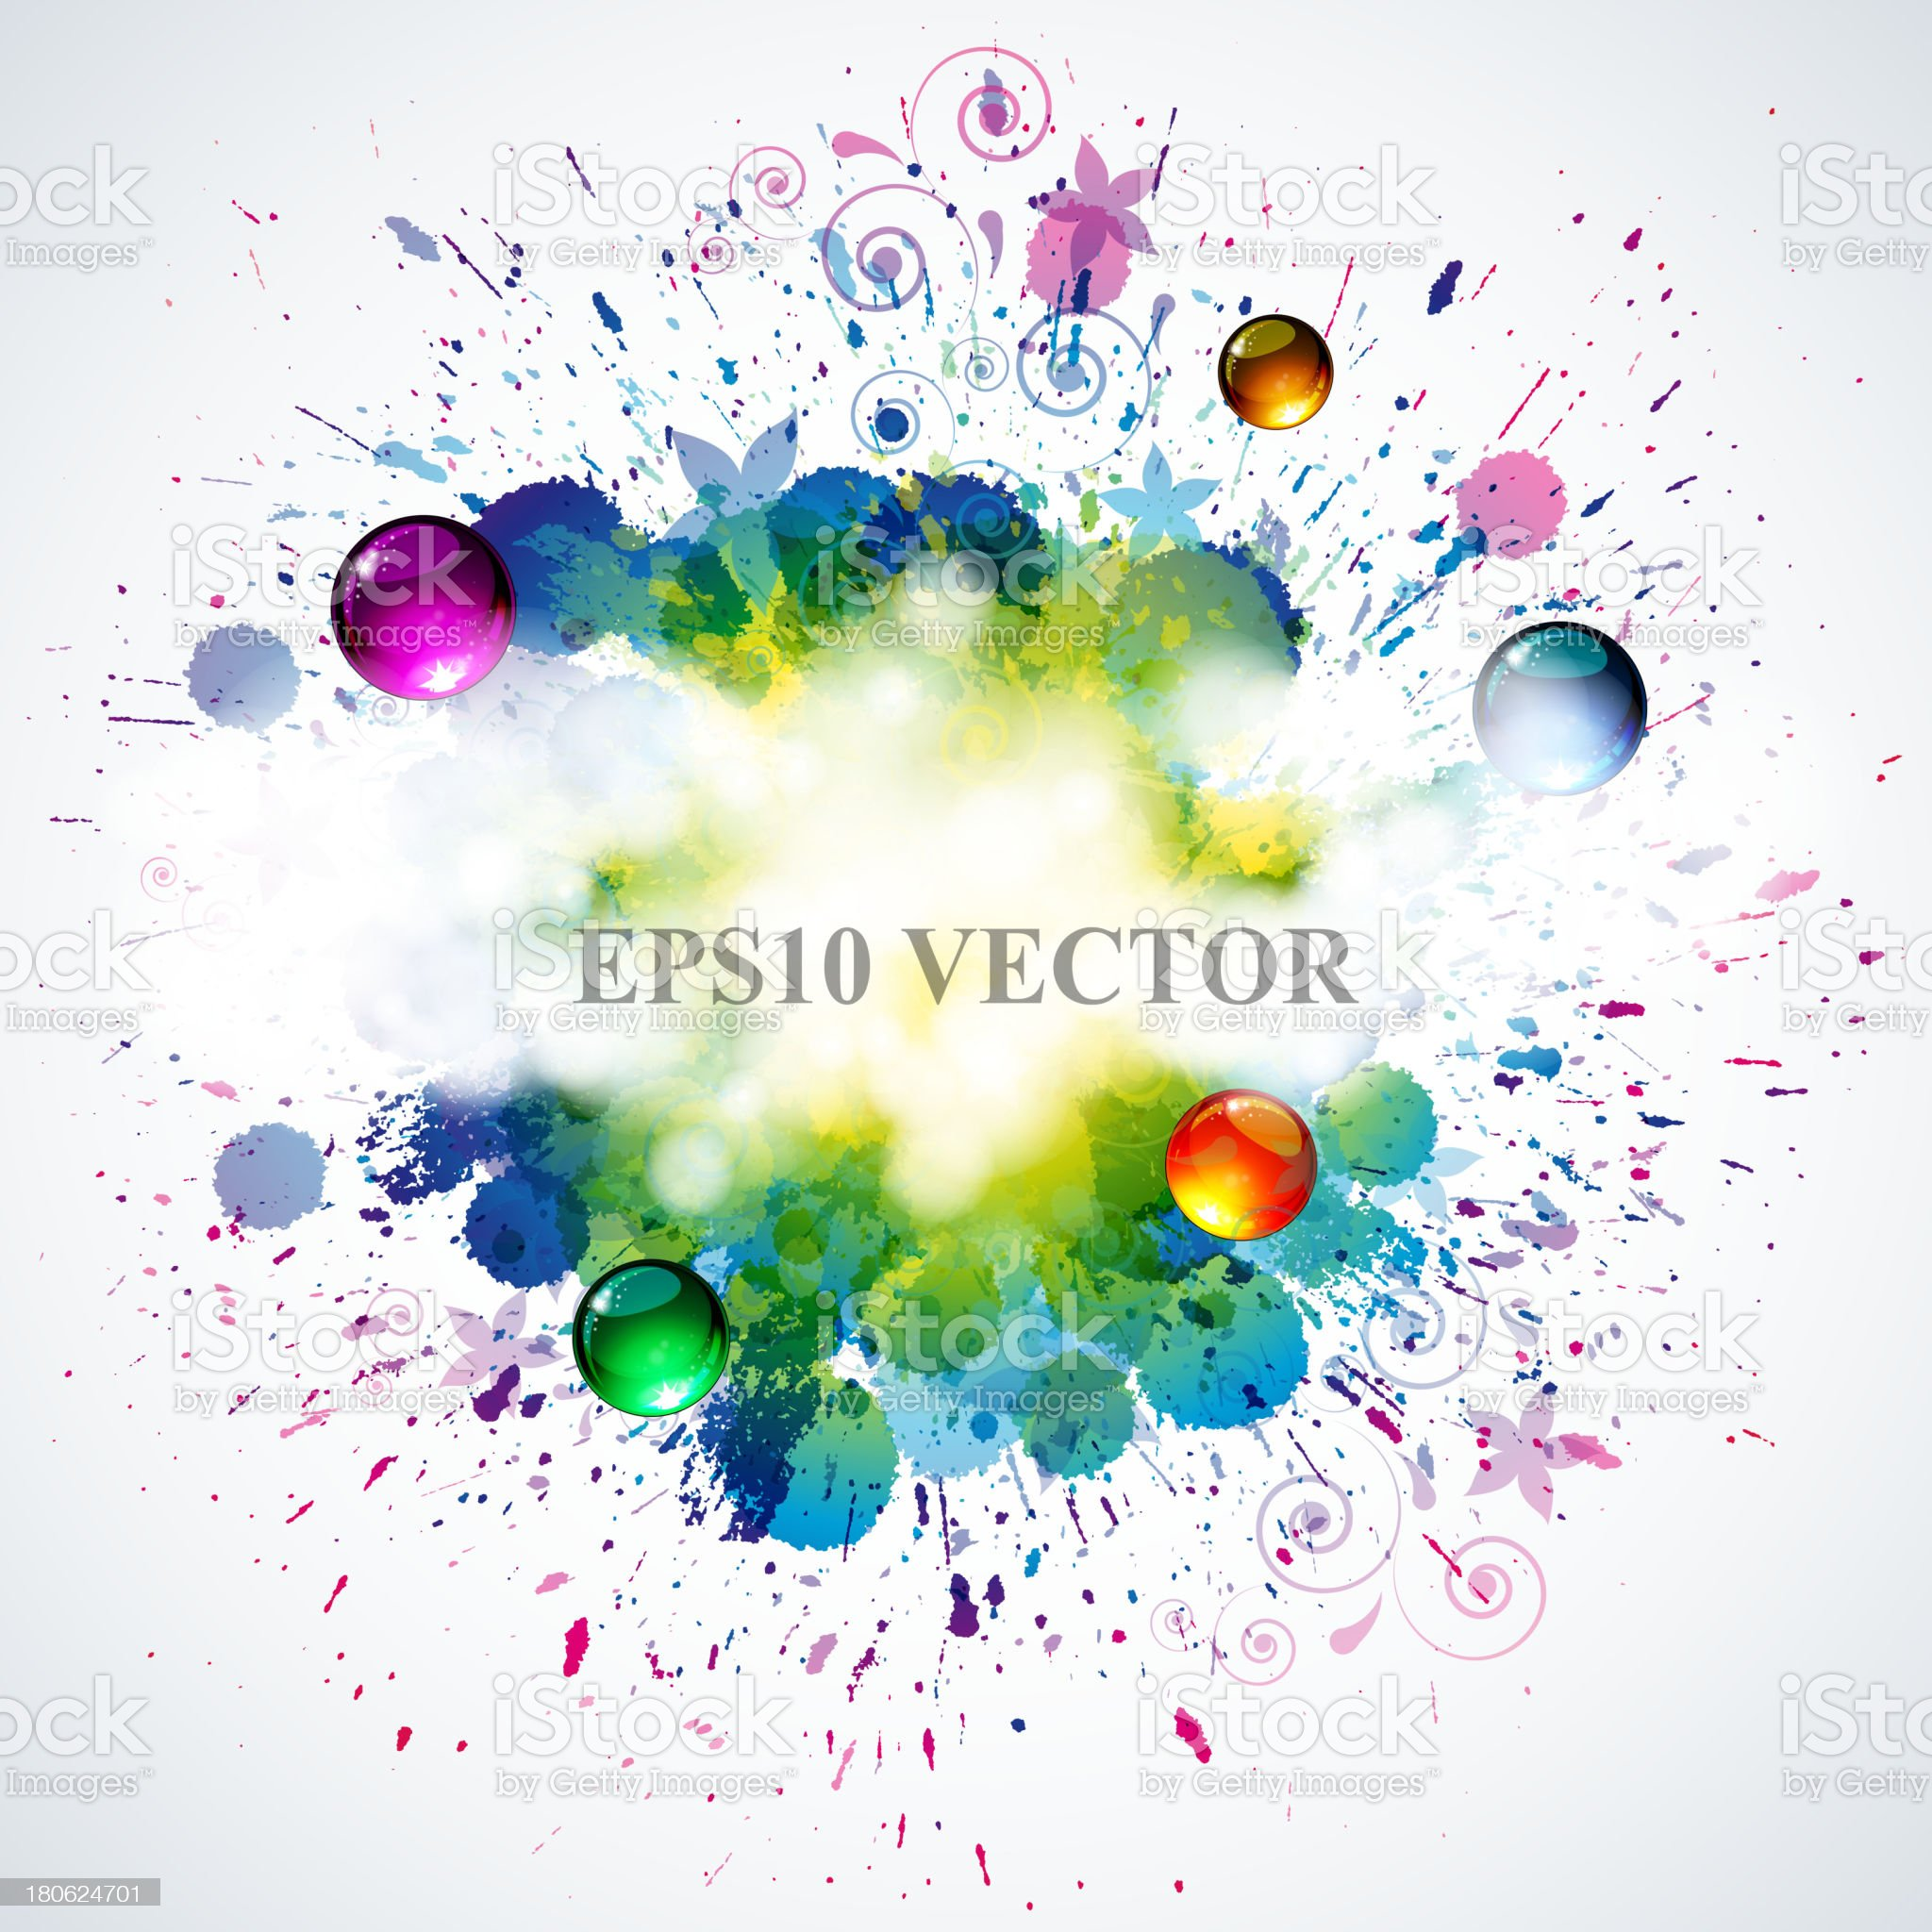 eps10 vector splash background royalty-free stock vector art